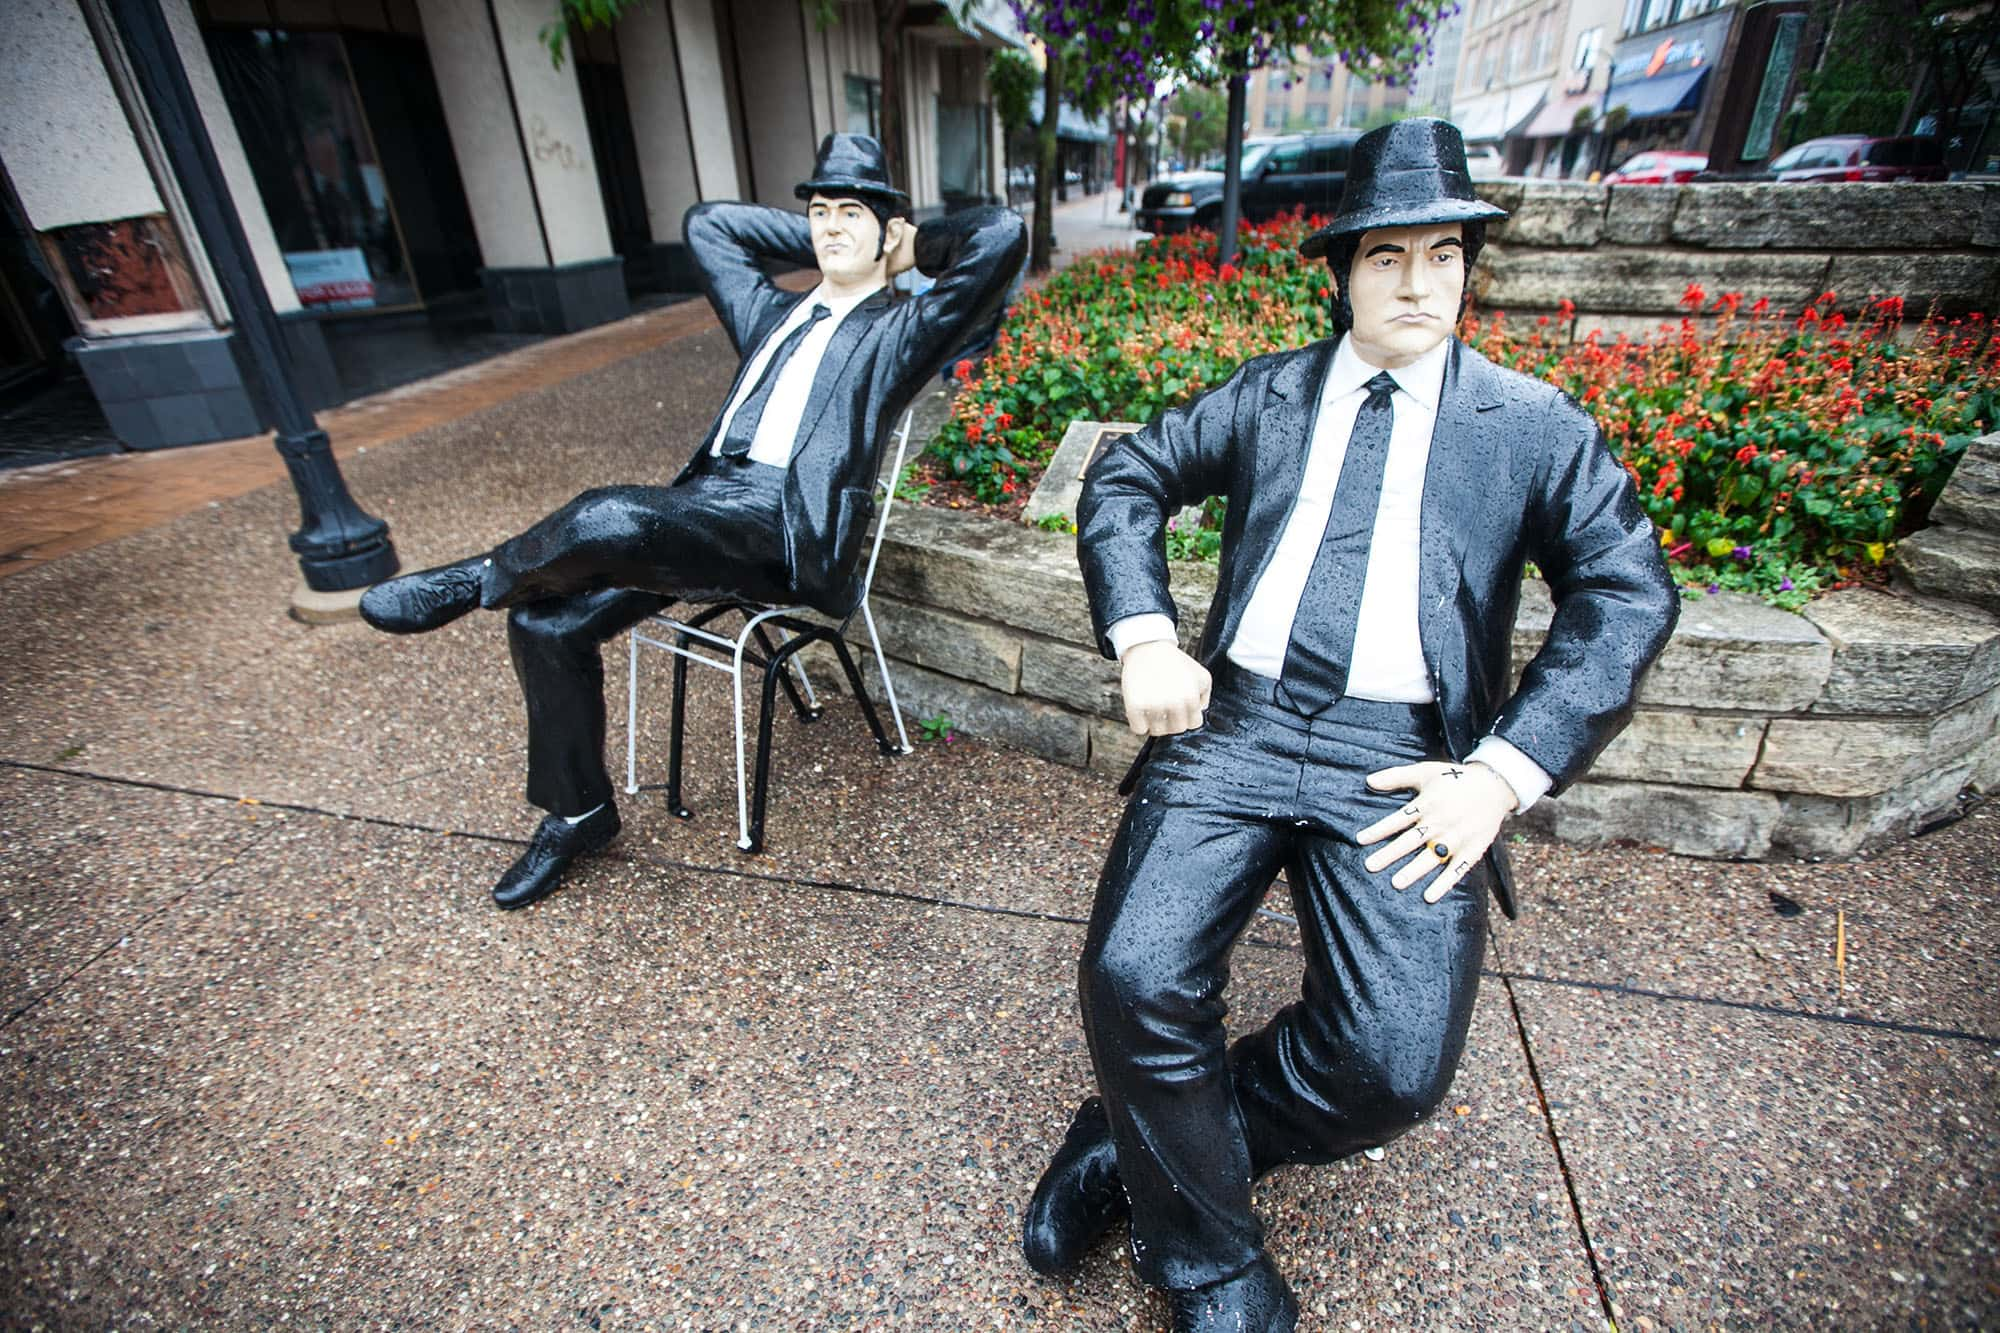 Blues Brothers Statues in Rock Island, Illinois.